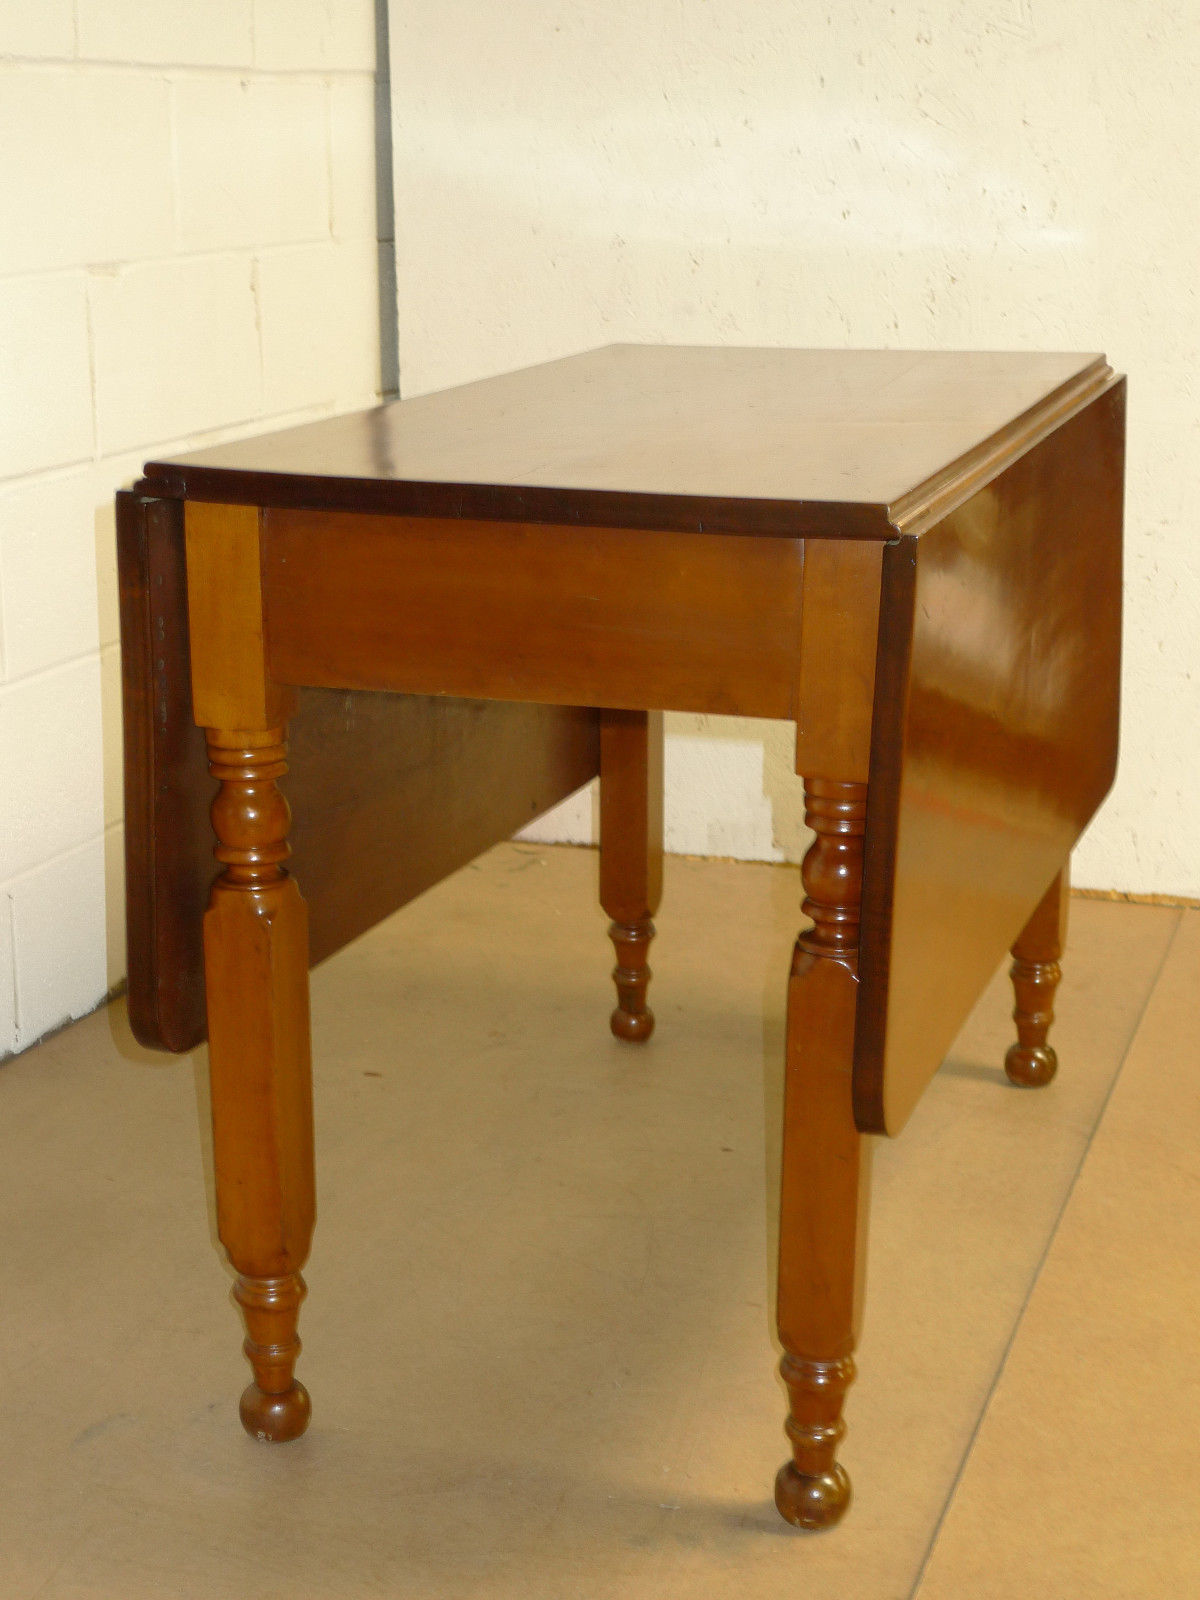 Knoll Table Victorian Period - Cherry Drop Leaf Table Victorian Period